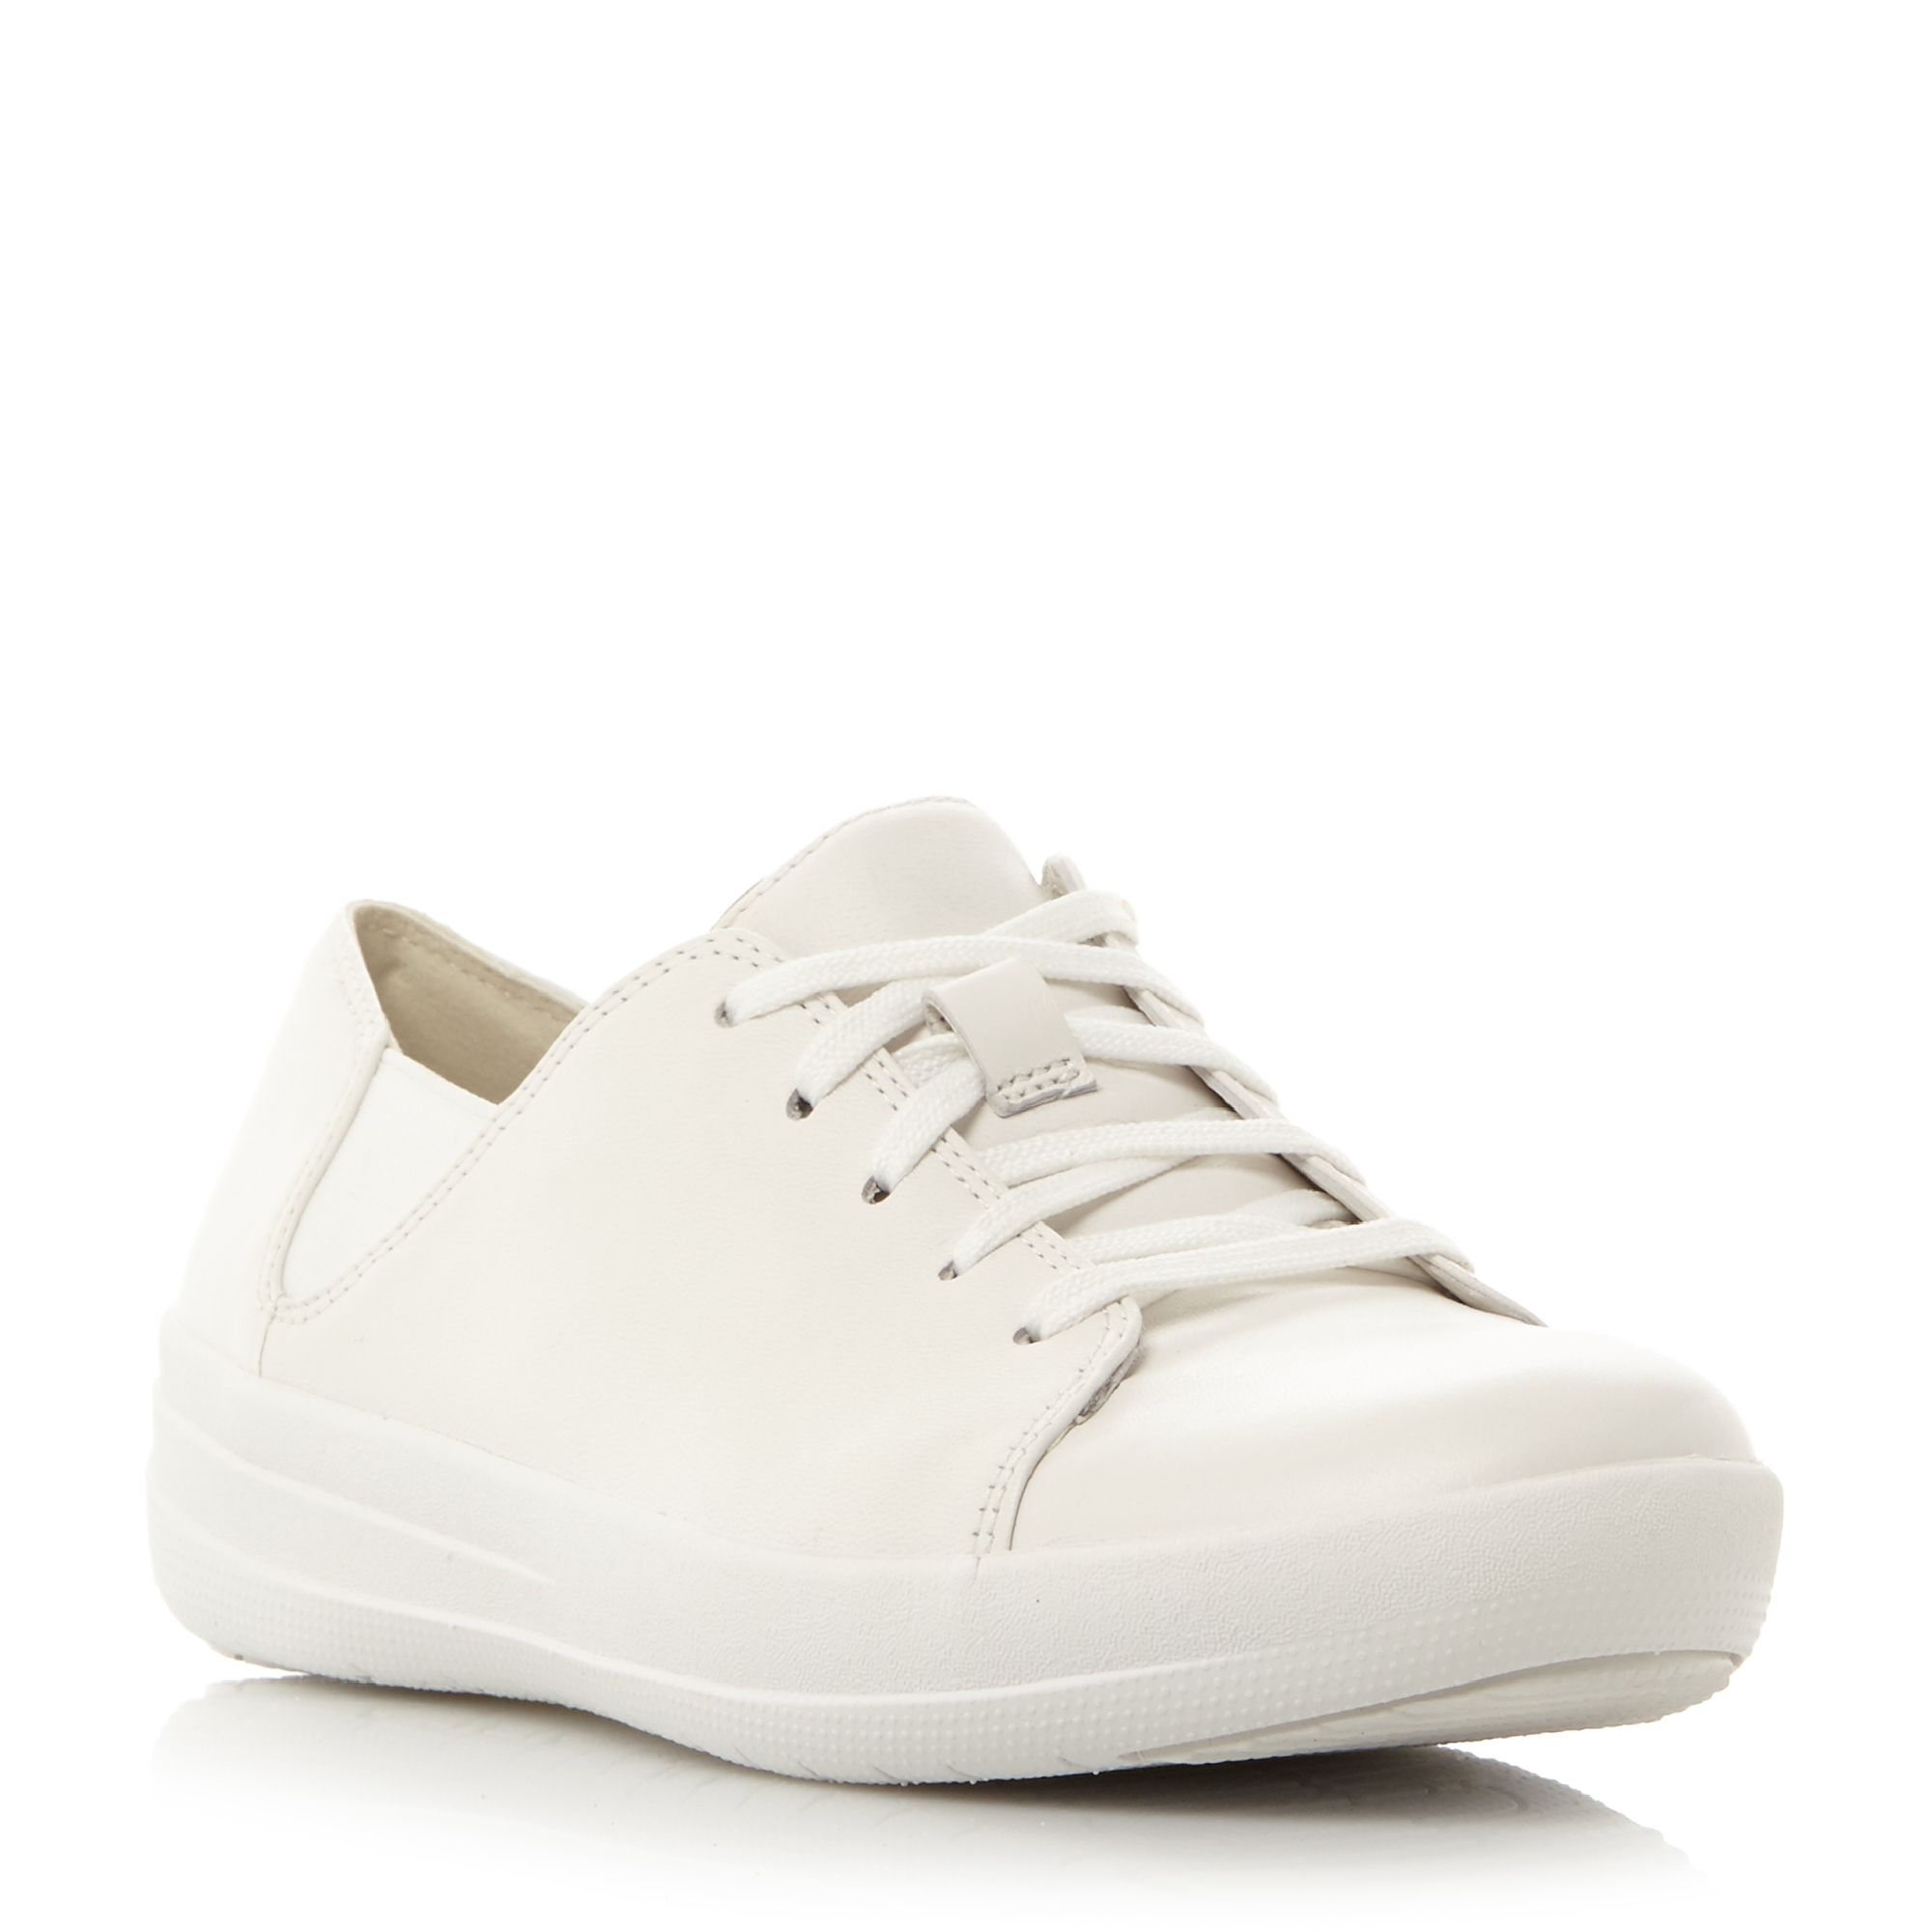 FitFlop F-sporty lace up perforated trainers, White